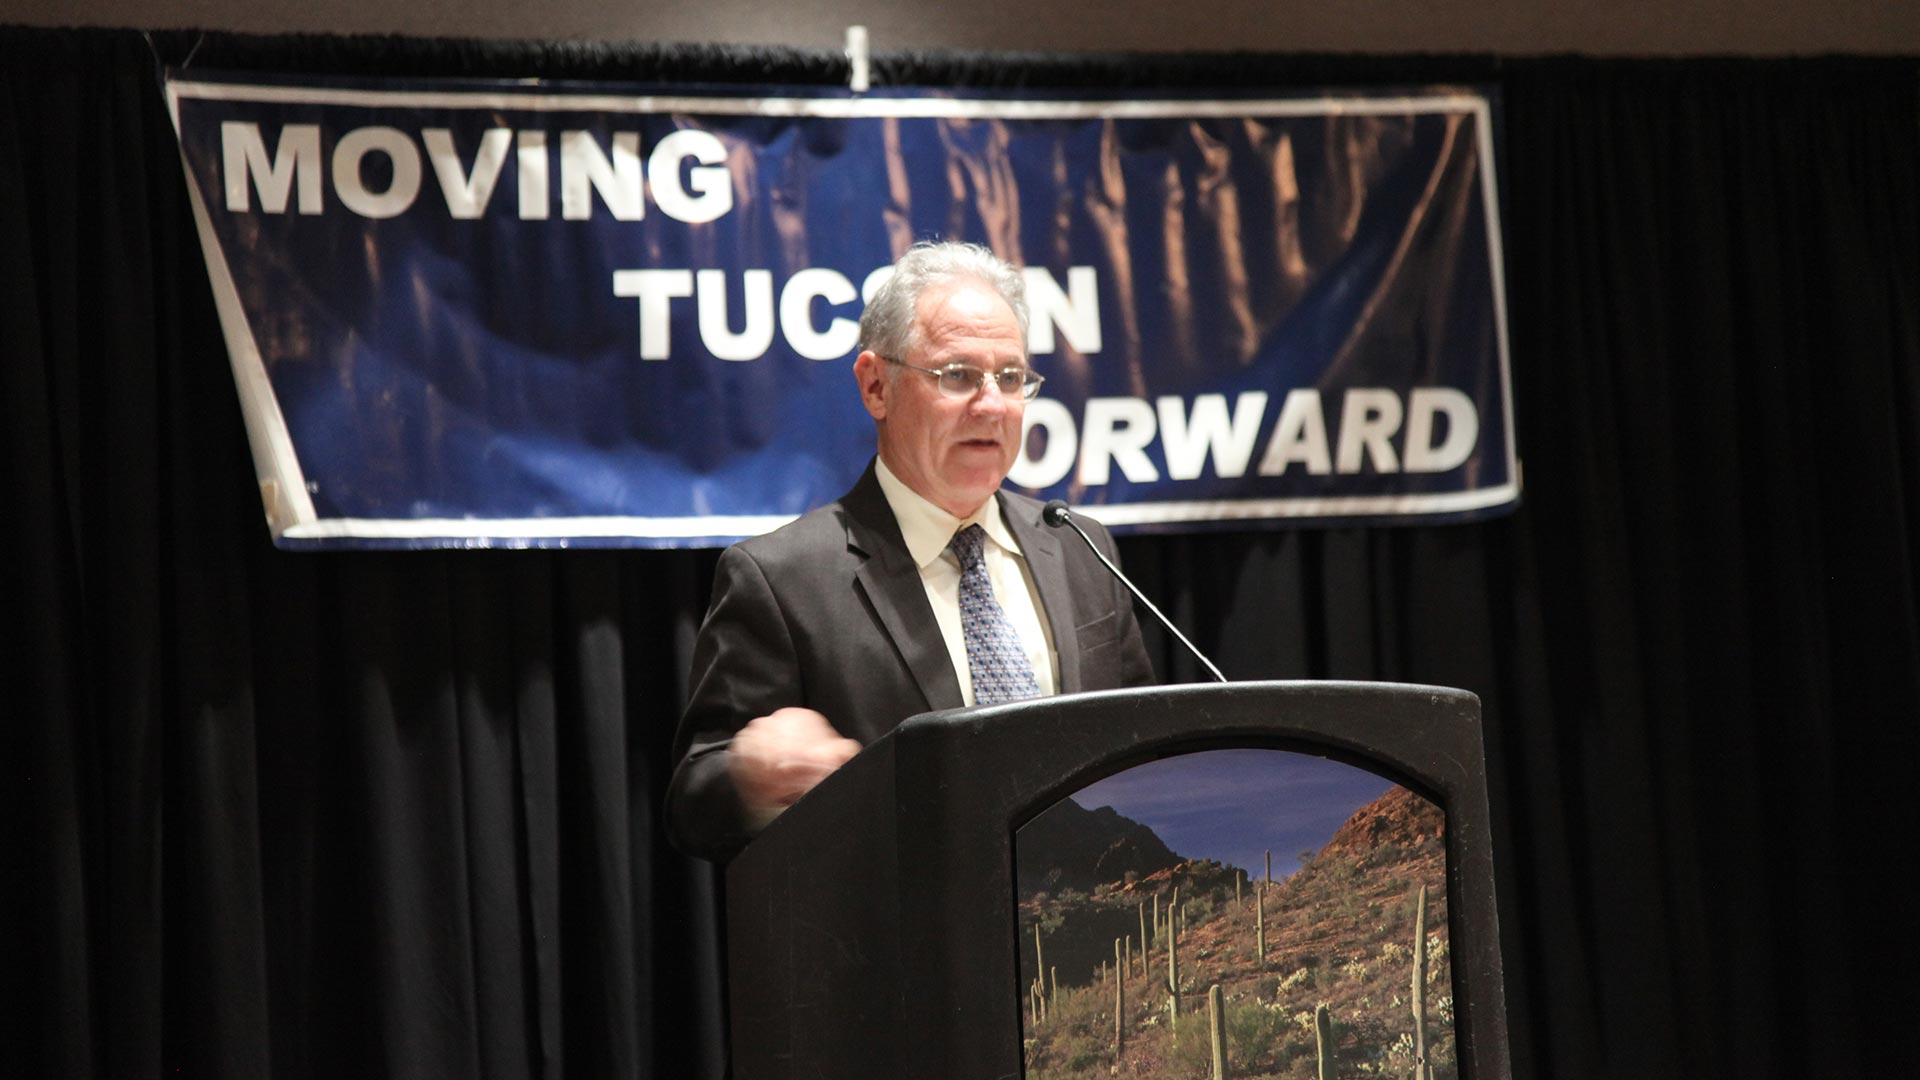 Tucson Mayor Jonathan Rothschild speaks at his second inauguration, December 2015.